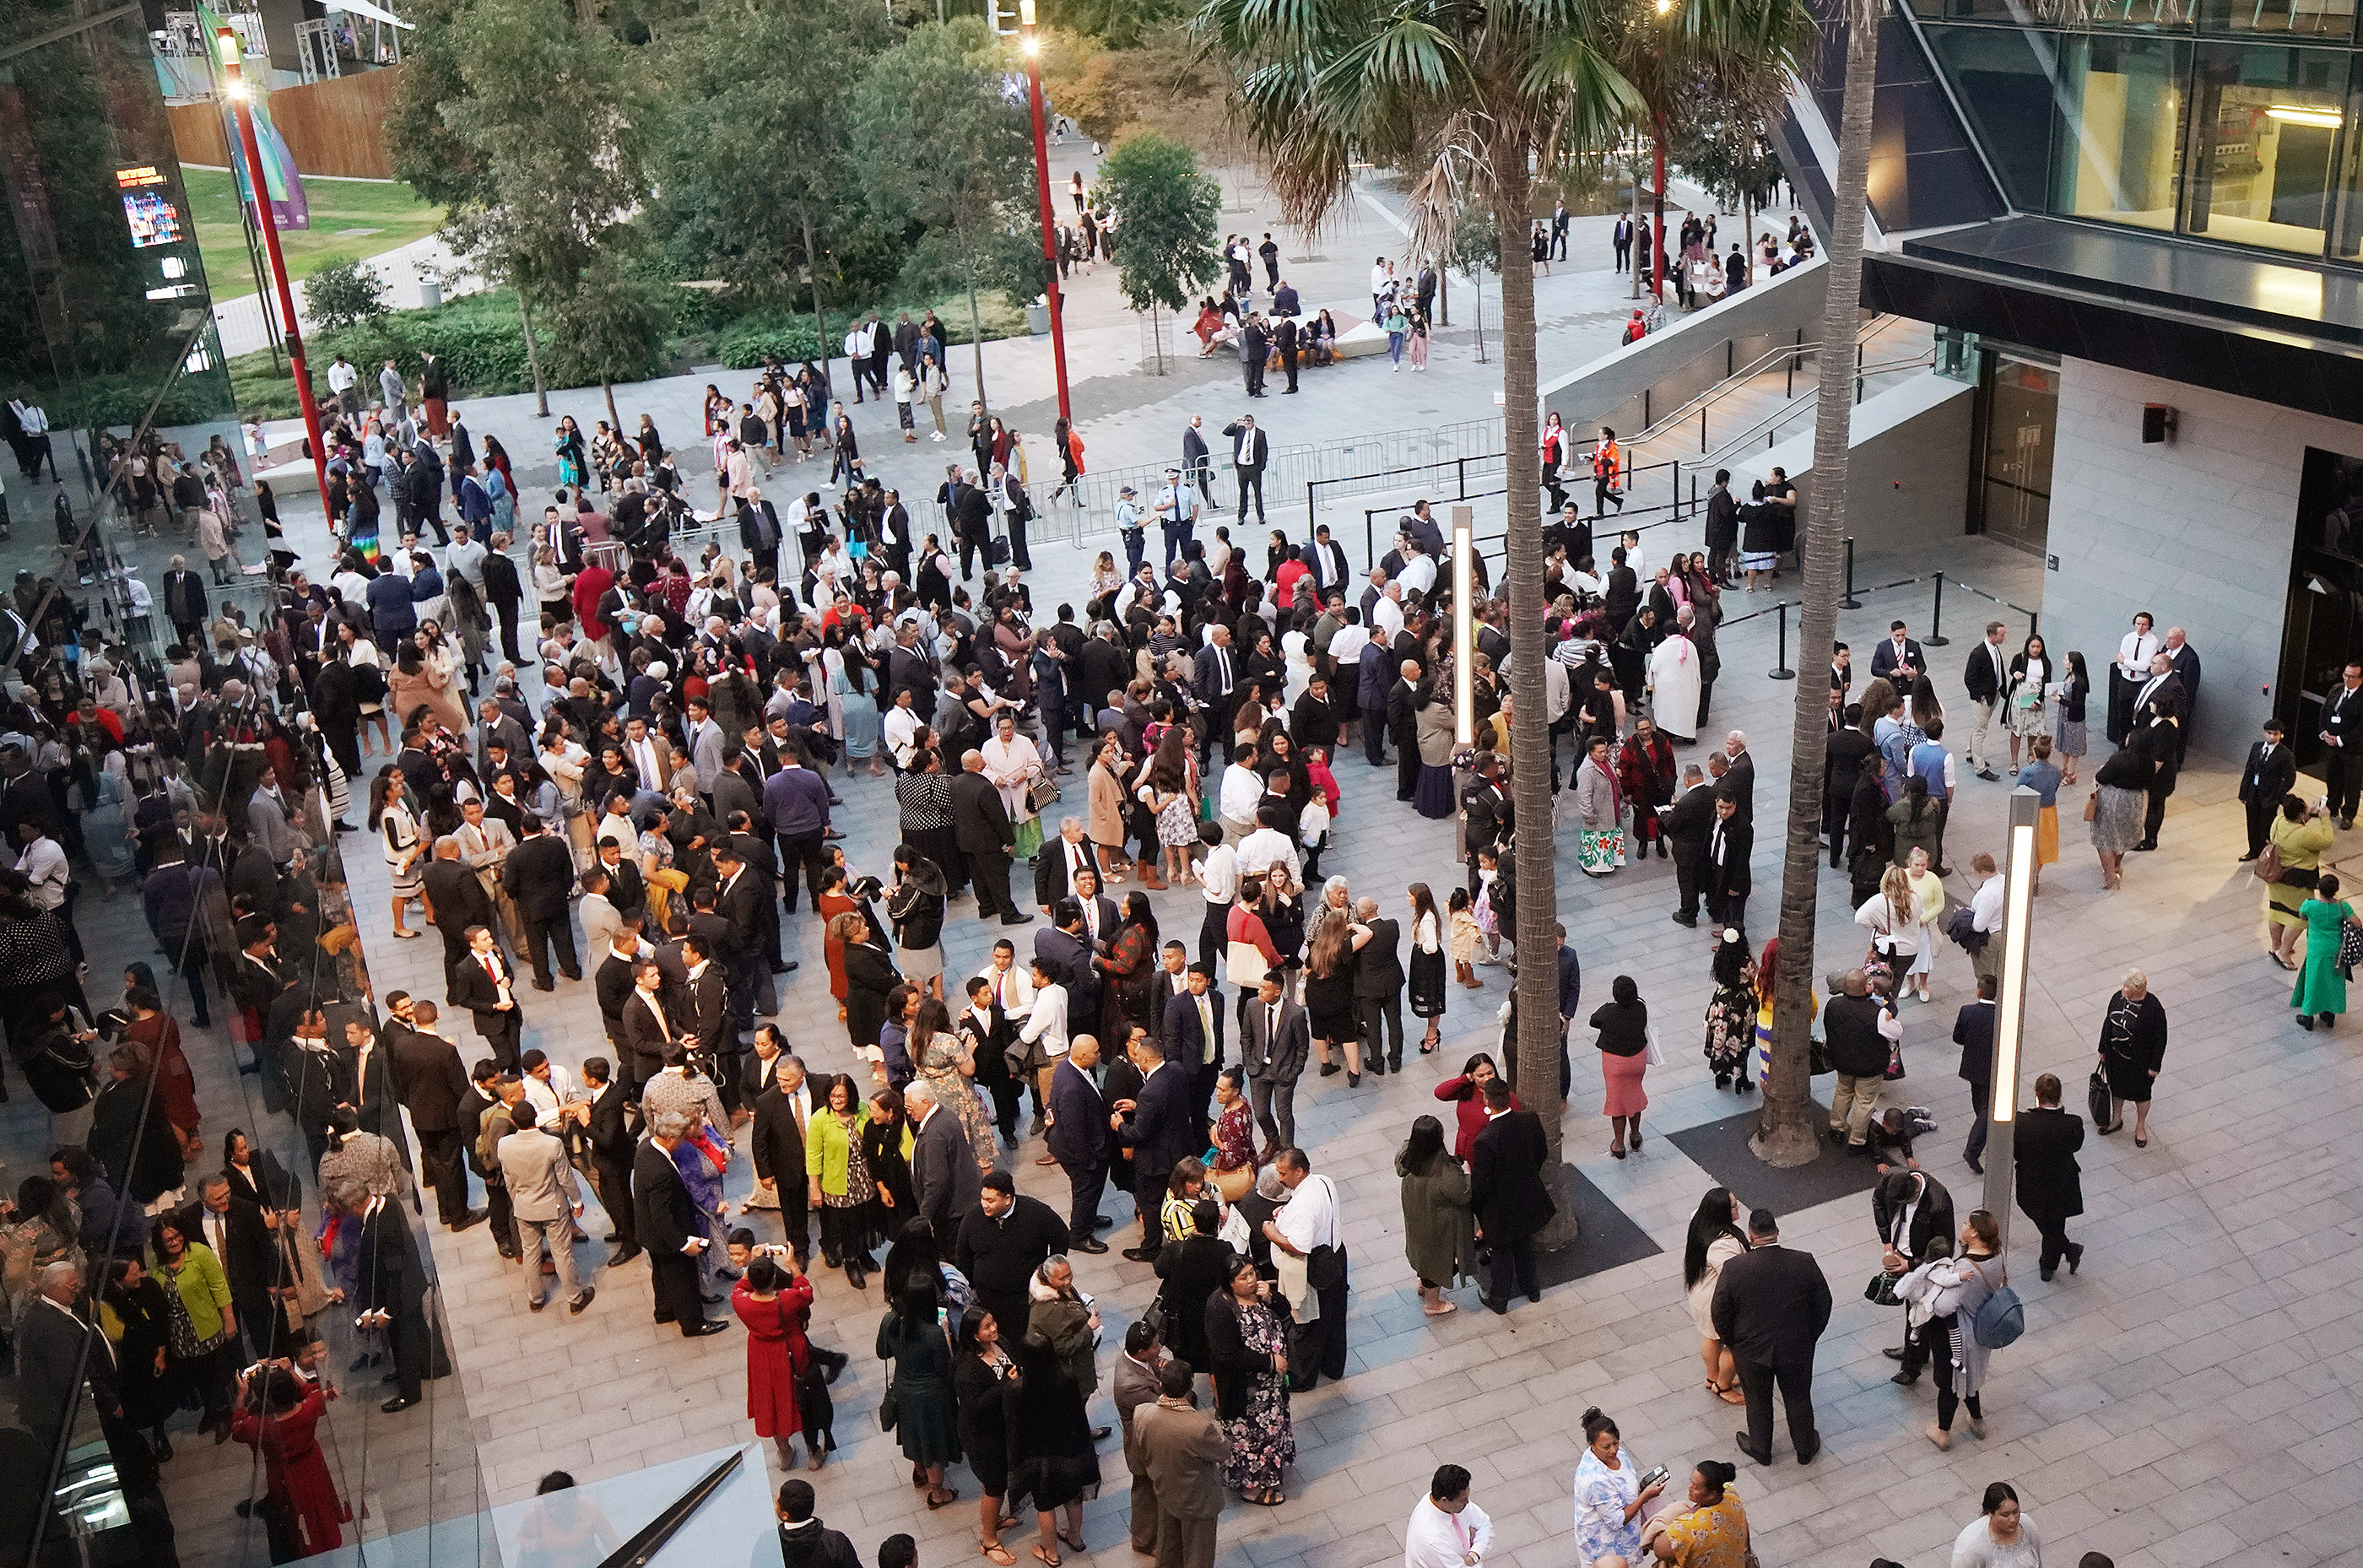 Attendees gather in front of the International Conference Center to hear President Russell M. Nelson of The Church of Jesus Christ of Latter-day Saints on May 19, 2019, in Sydney, Australia.